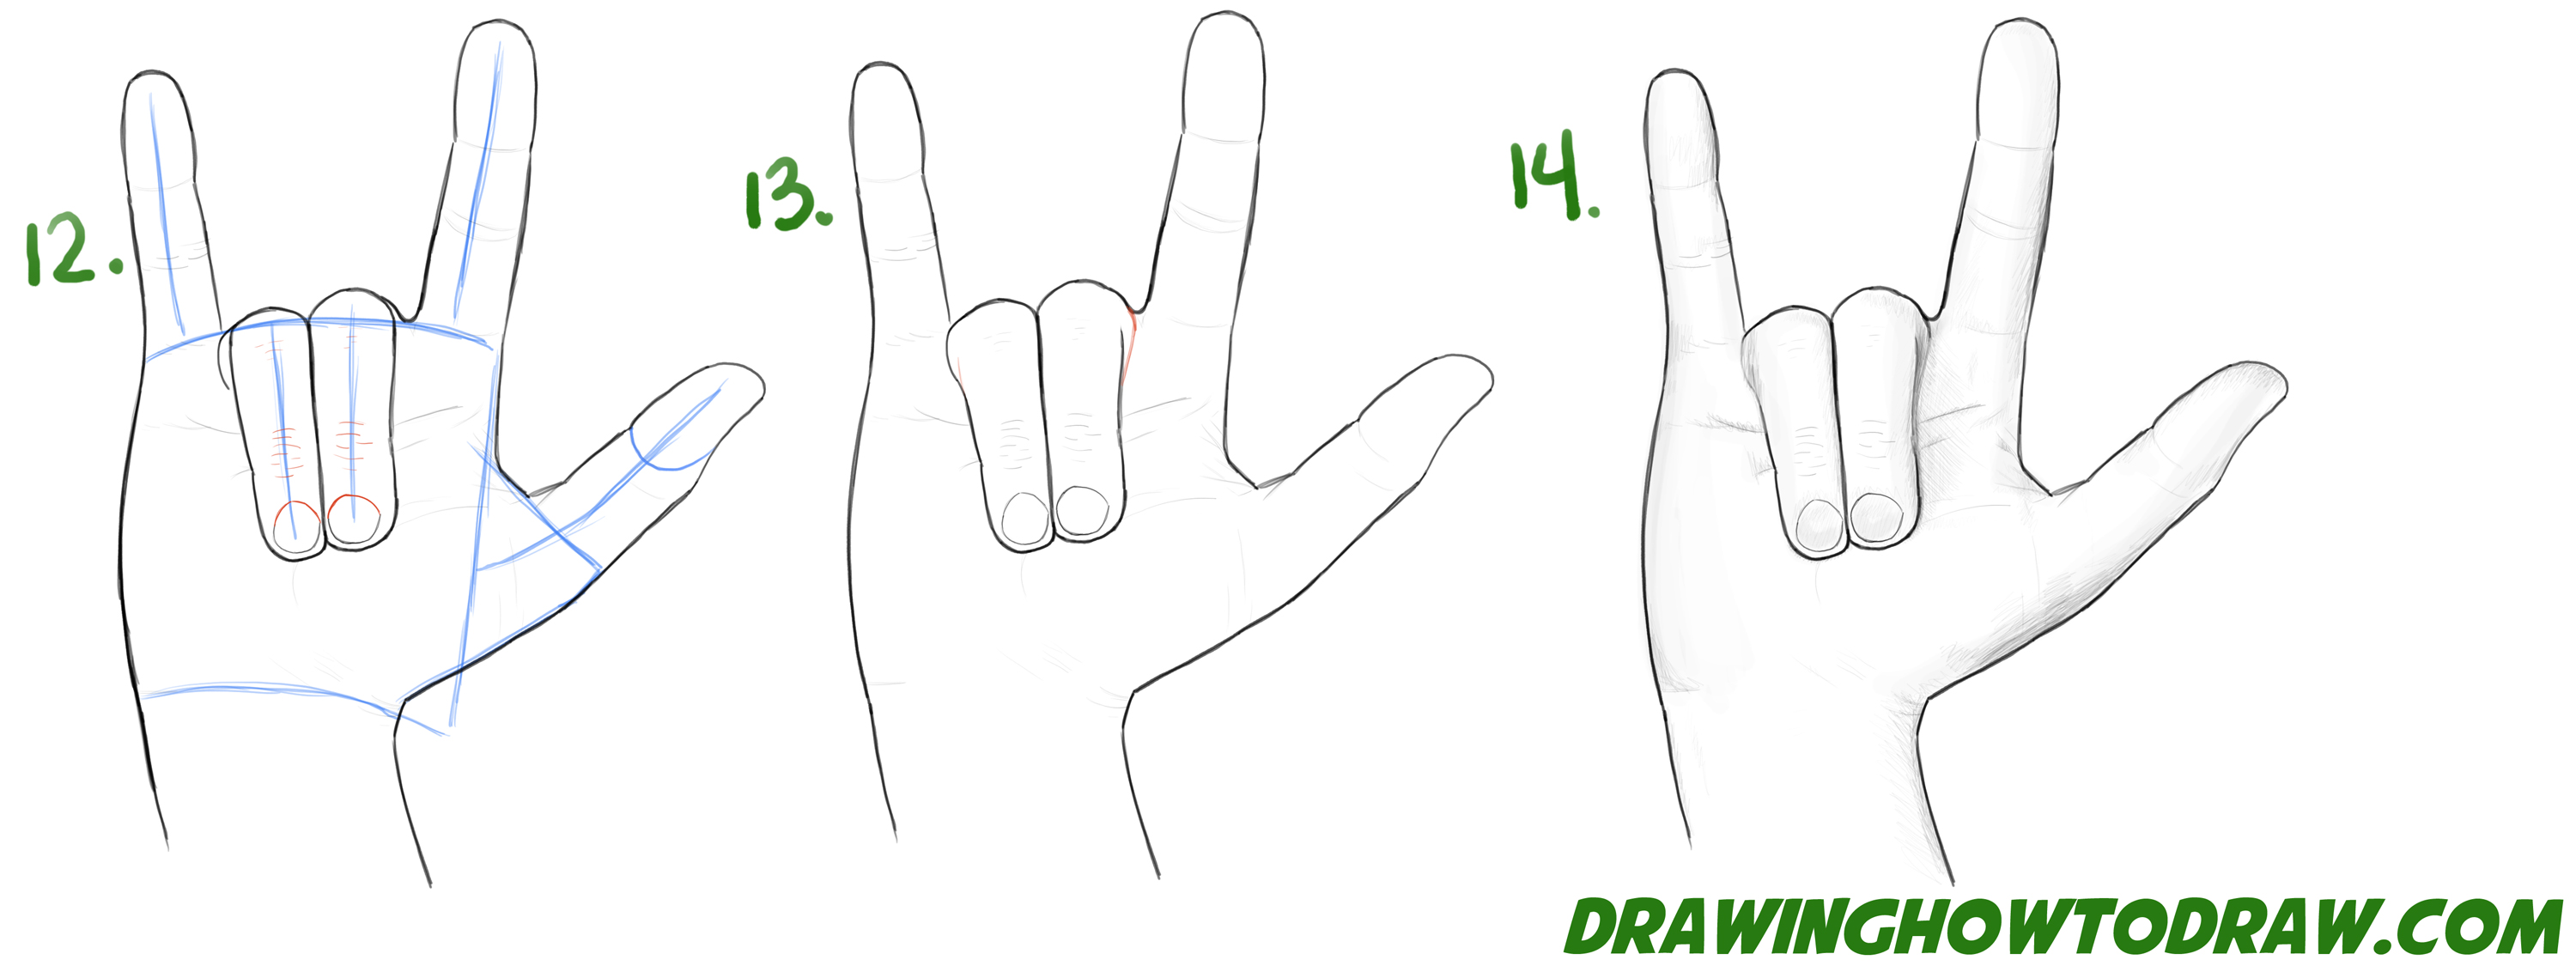 Learn how to draw love hands sign language for love simple steps drawing lesson